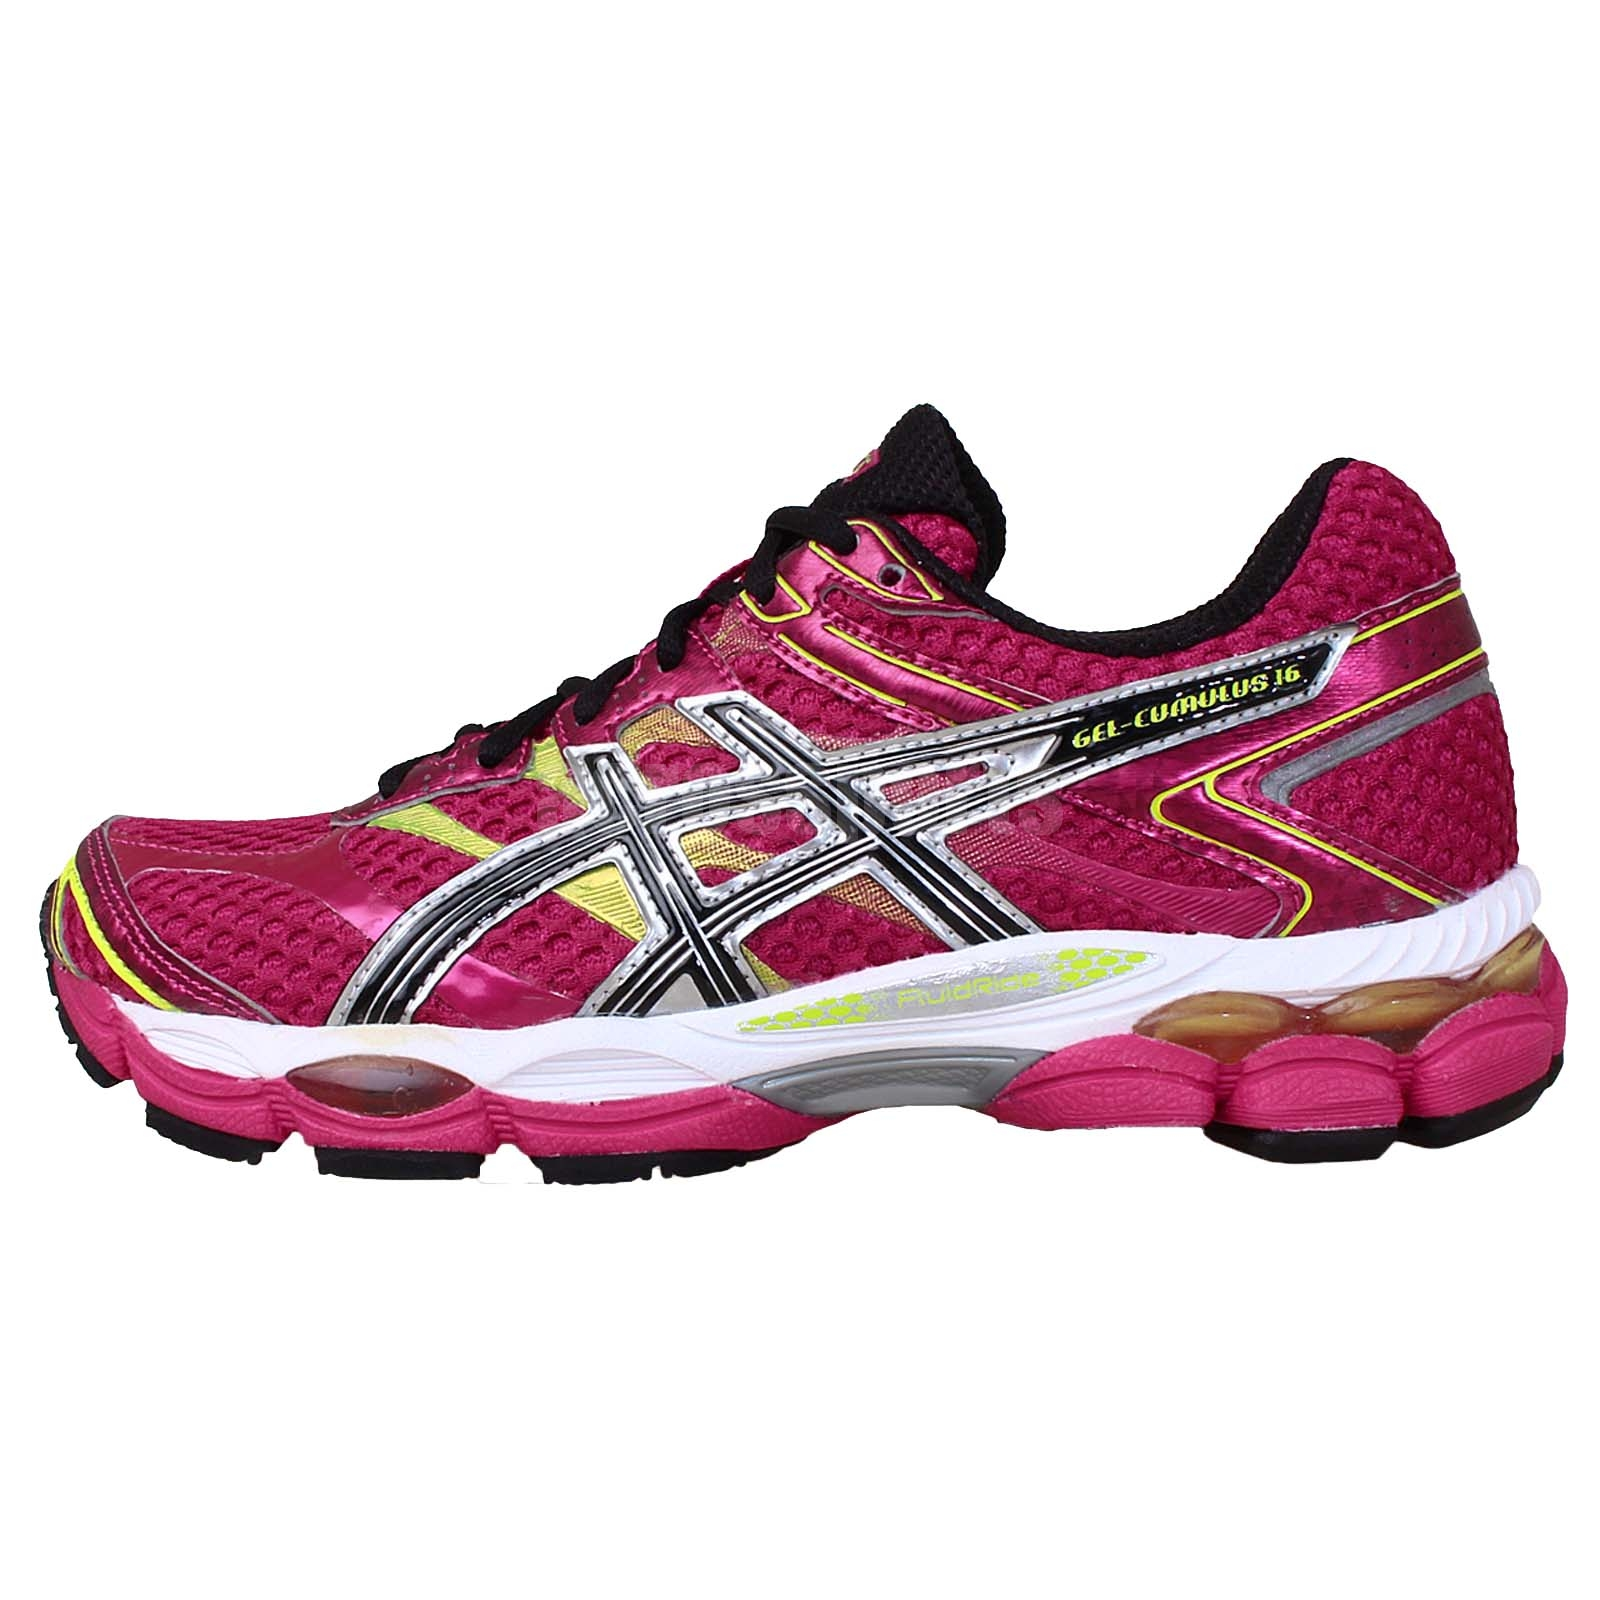 asics gel cumulus 16 raspberry black womens running shoes trainers t489n 2190 ebay. Black Bedroom Furniture Sets. Home Design Ideas